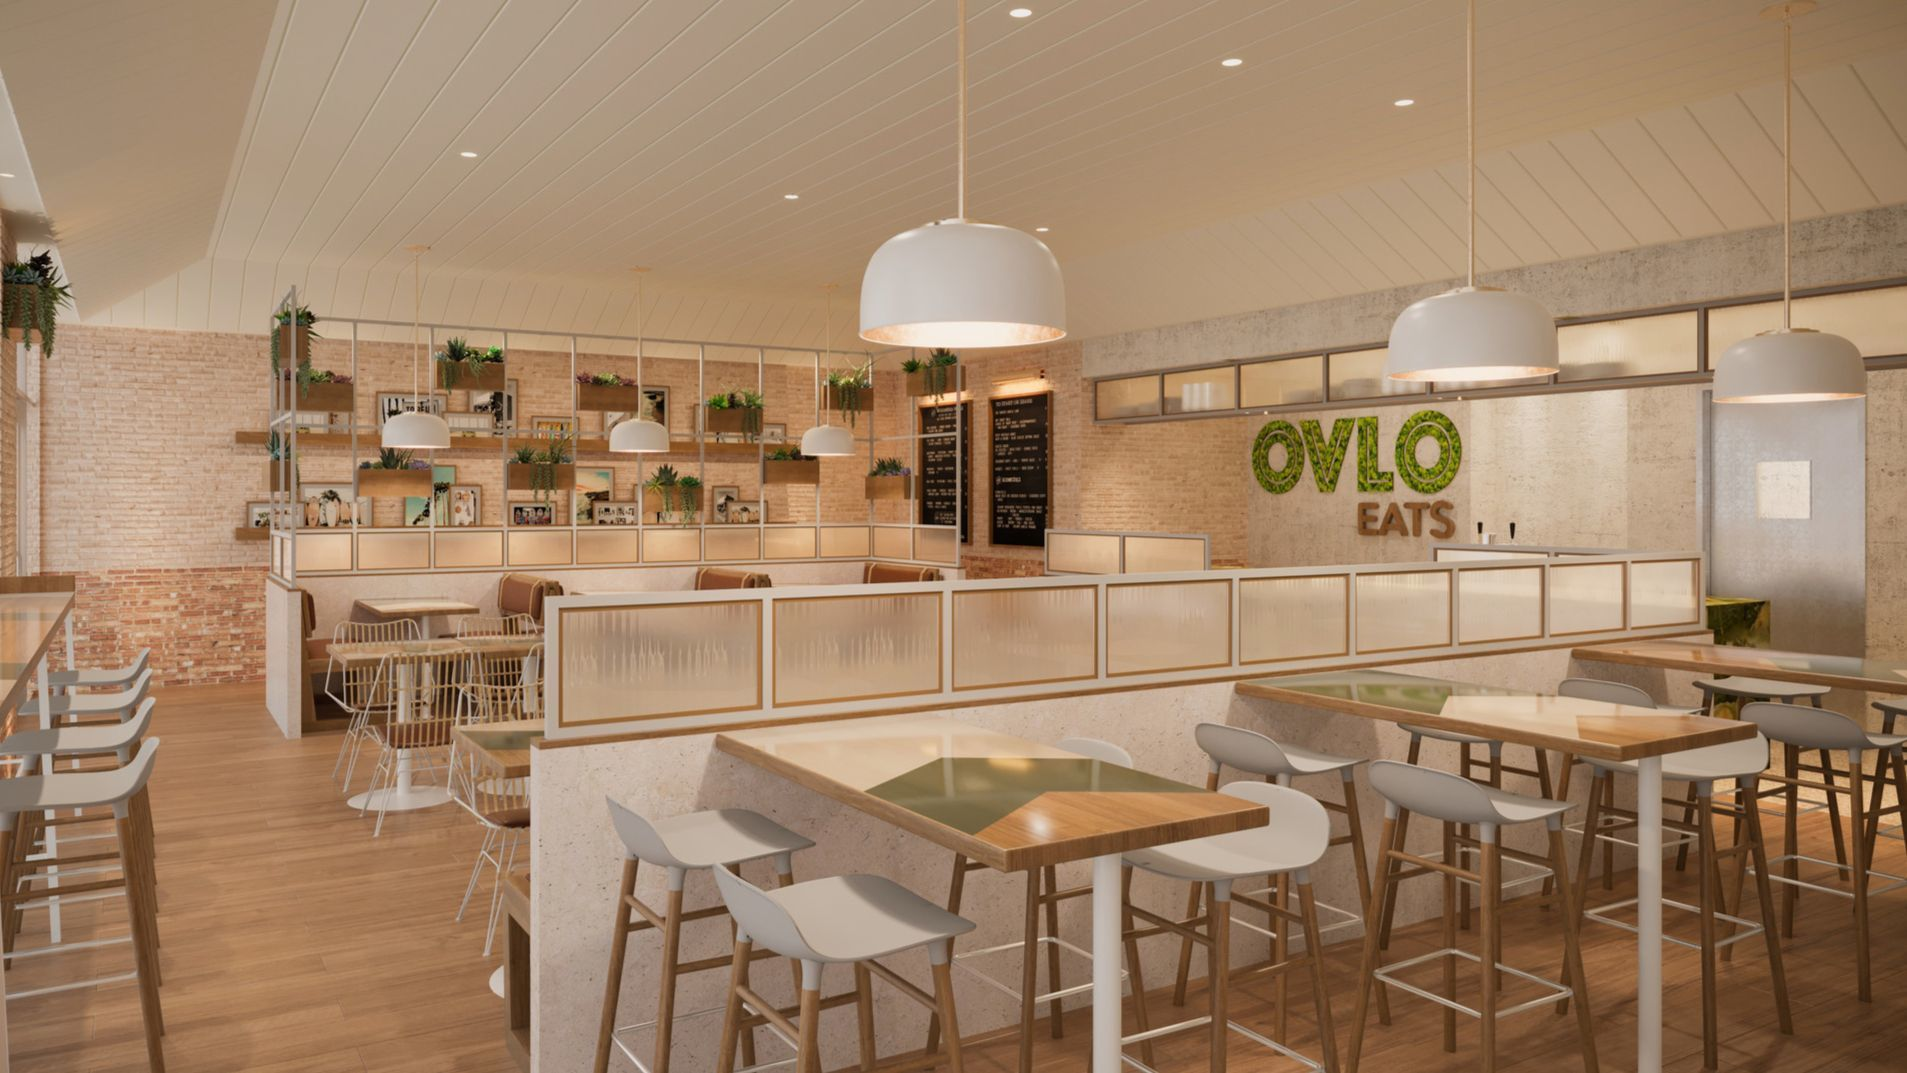 Ovlo Eats A Fast Casual Fine Dining Hybrid Opening In